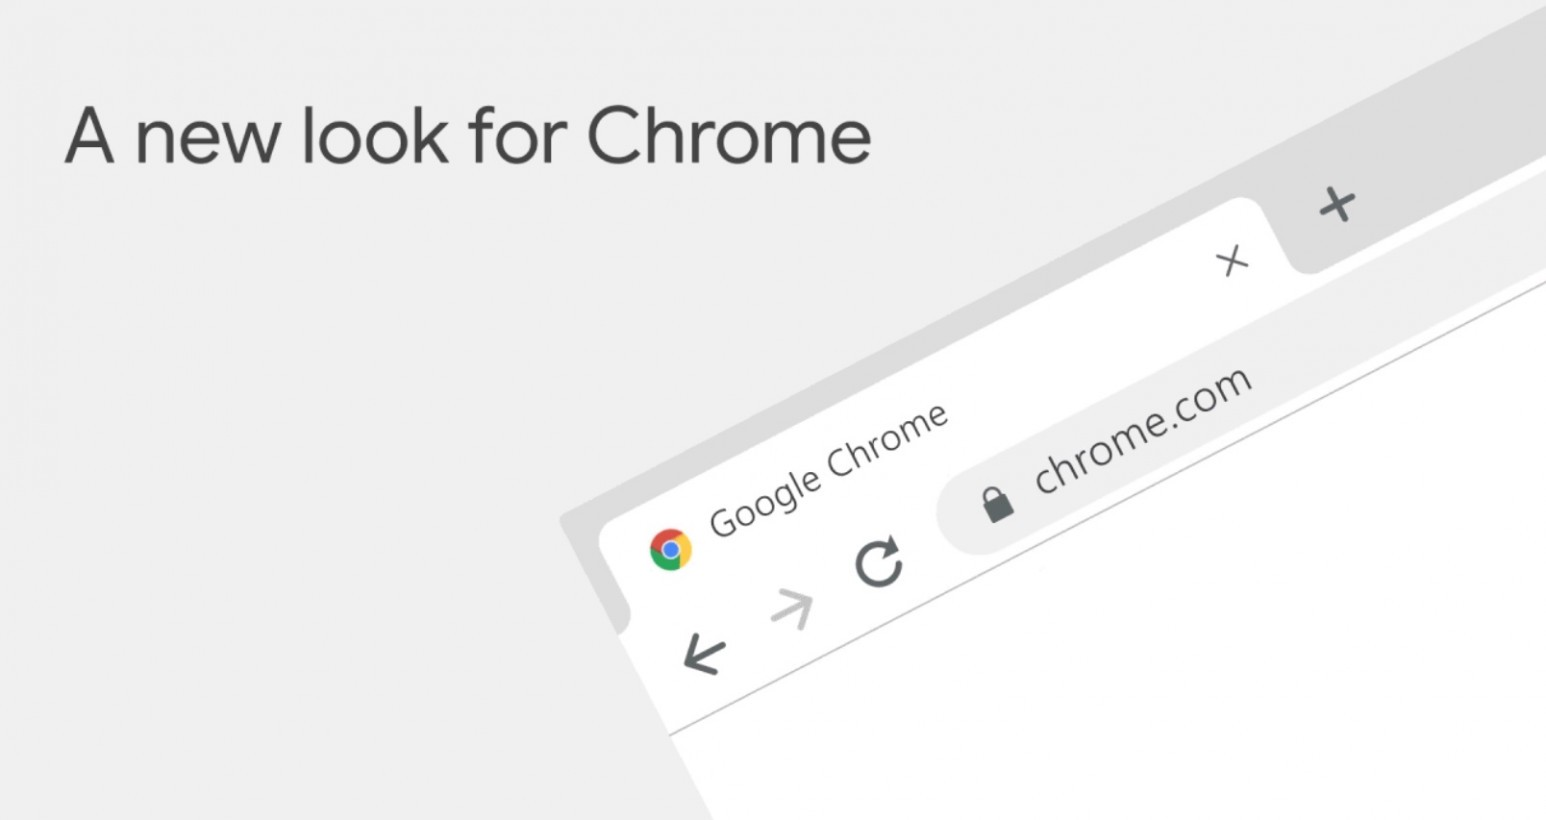 Chrome's new design — a UX perspective